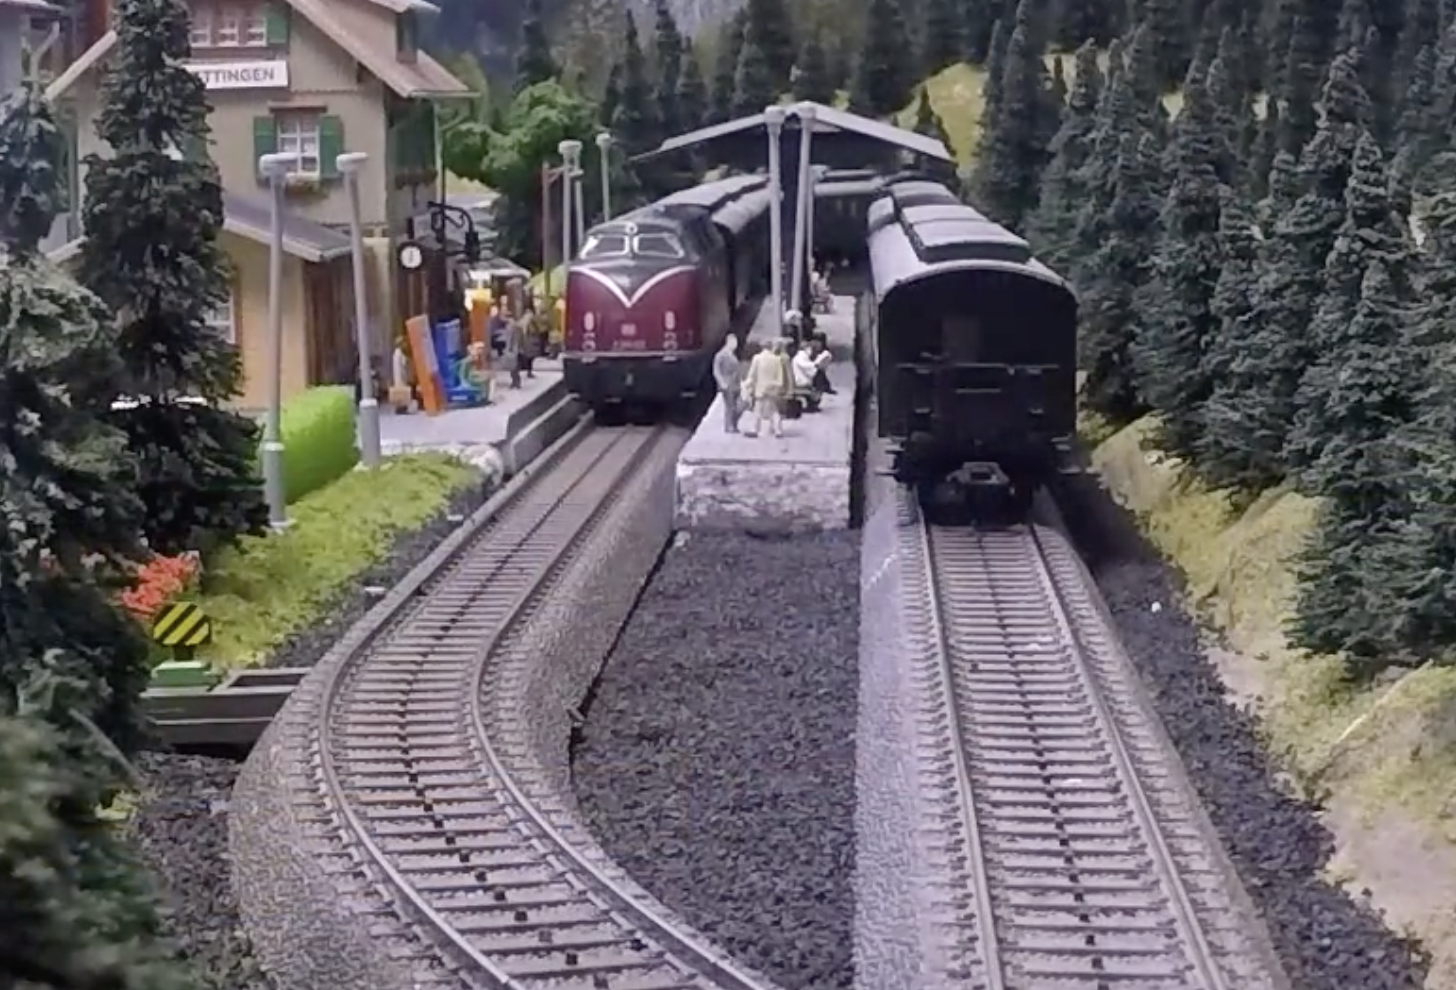 Russ's Rainy Day Railroad … managed by an Artificially Intelligent software system. Come and visit this advanced model.